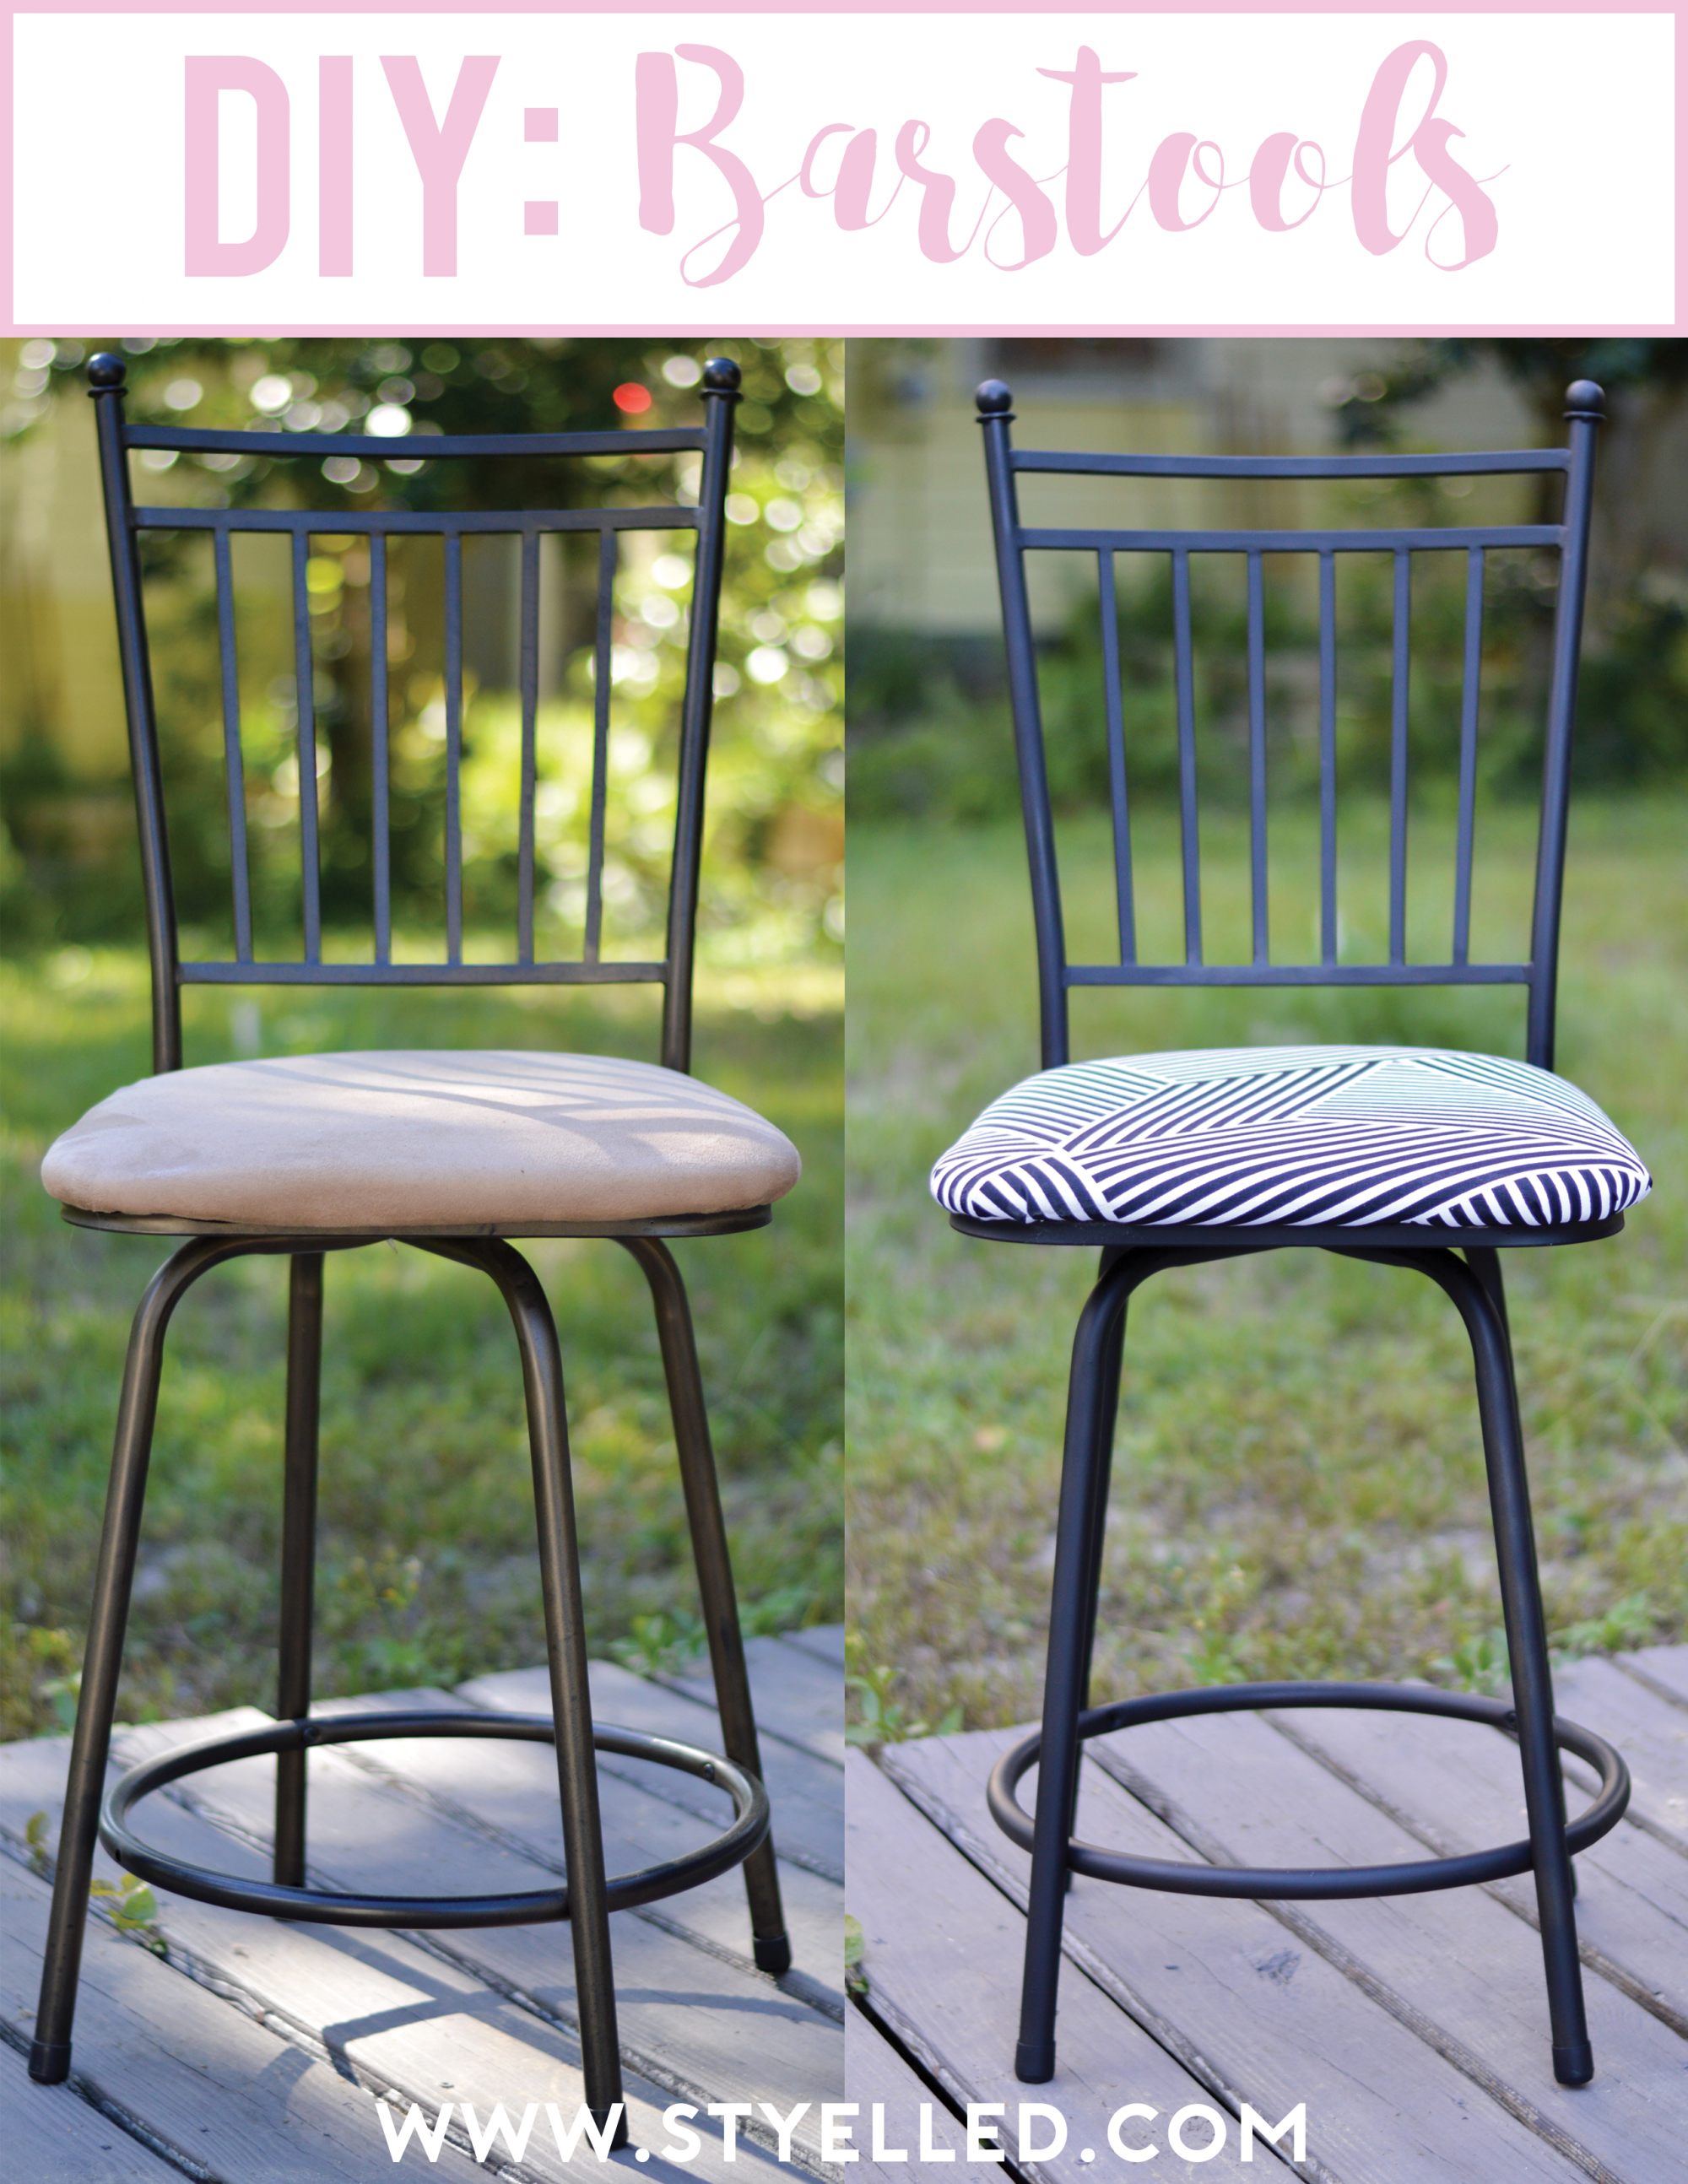 DIY: Turn your Barstools from Drab to Fab - Styelled